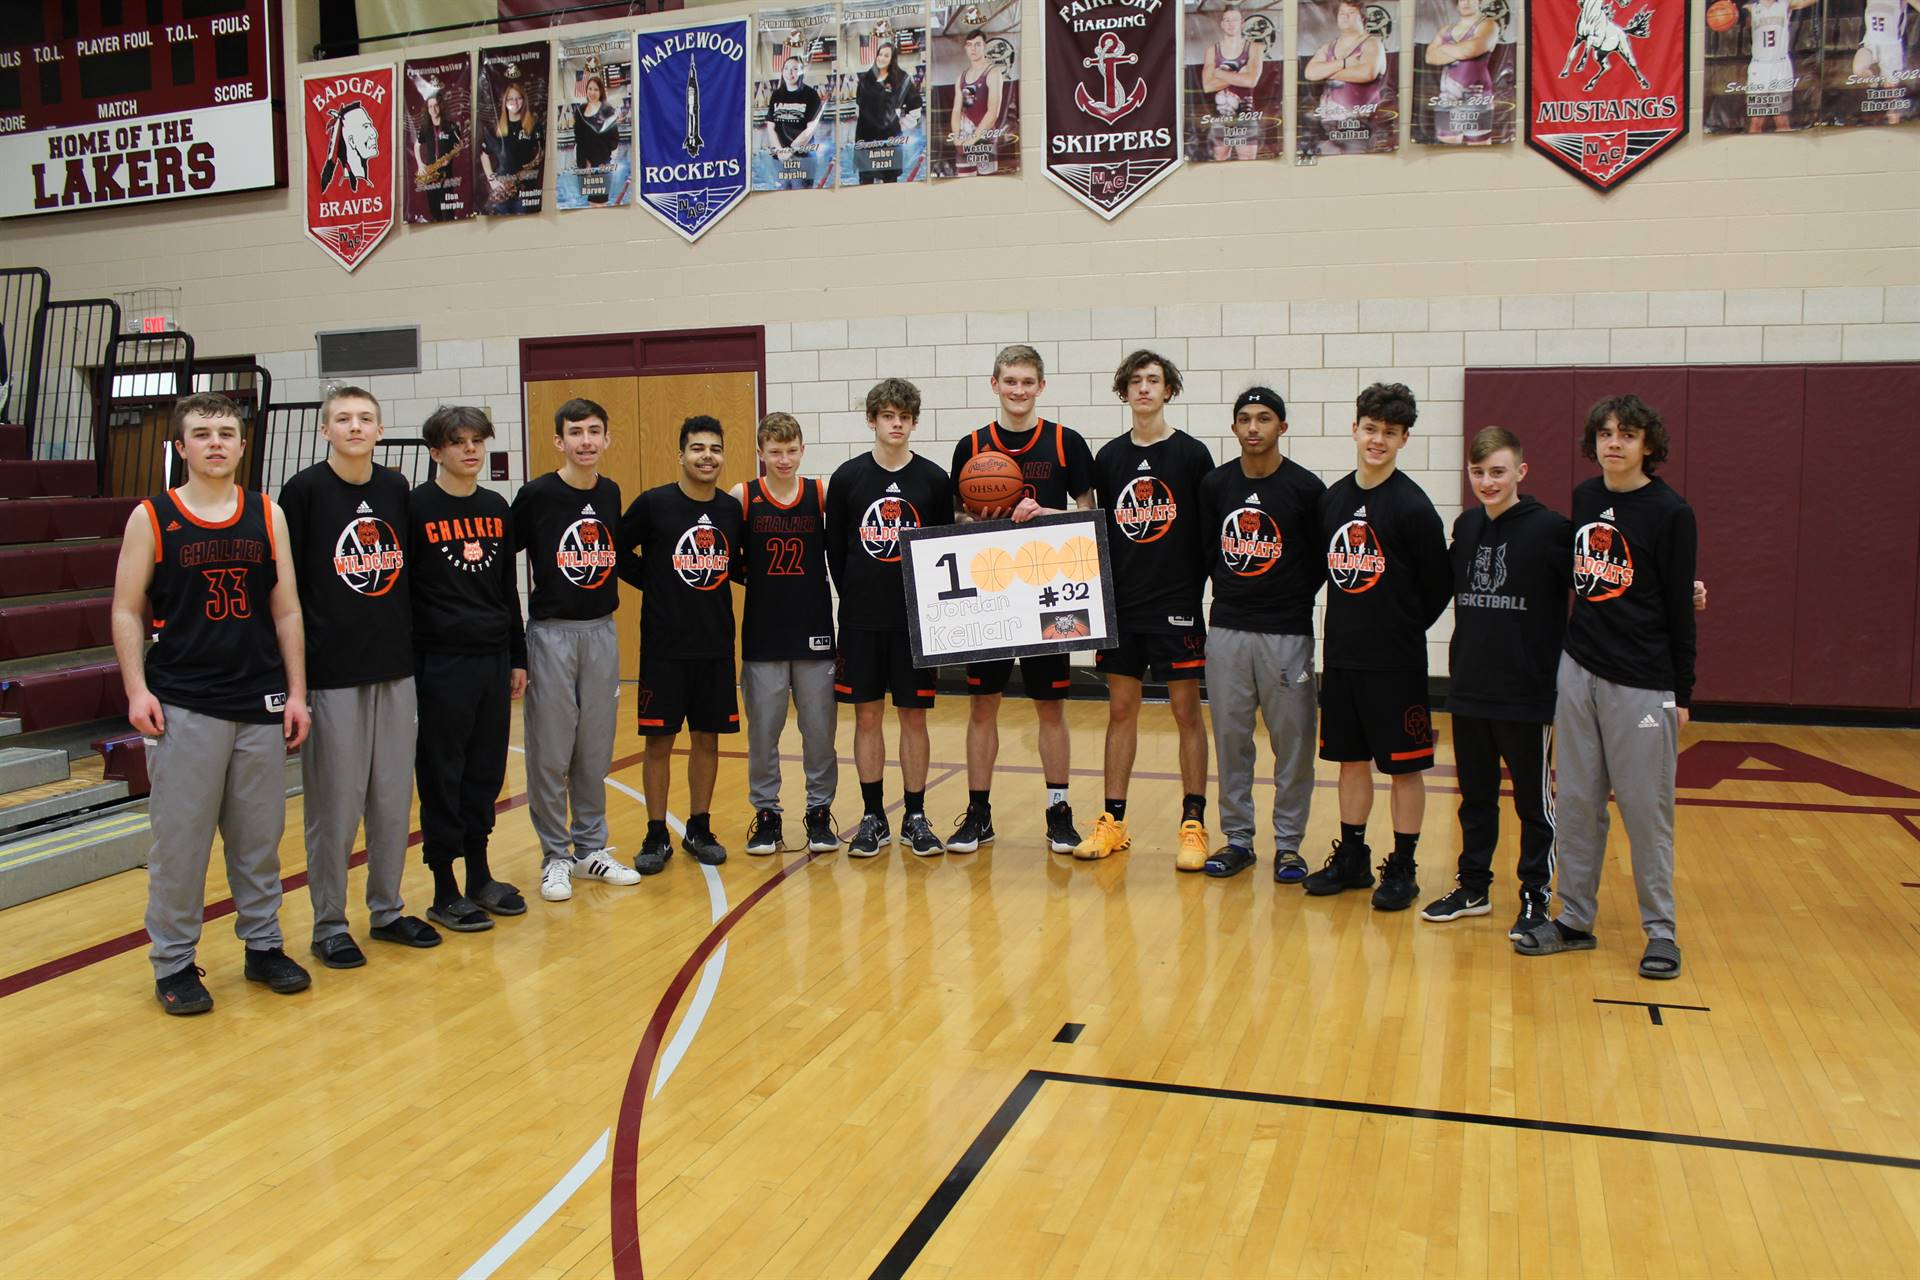 1000 Point Scorer and Team